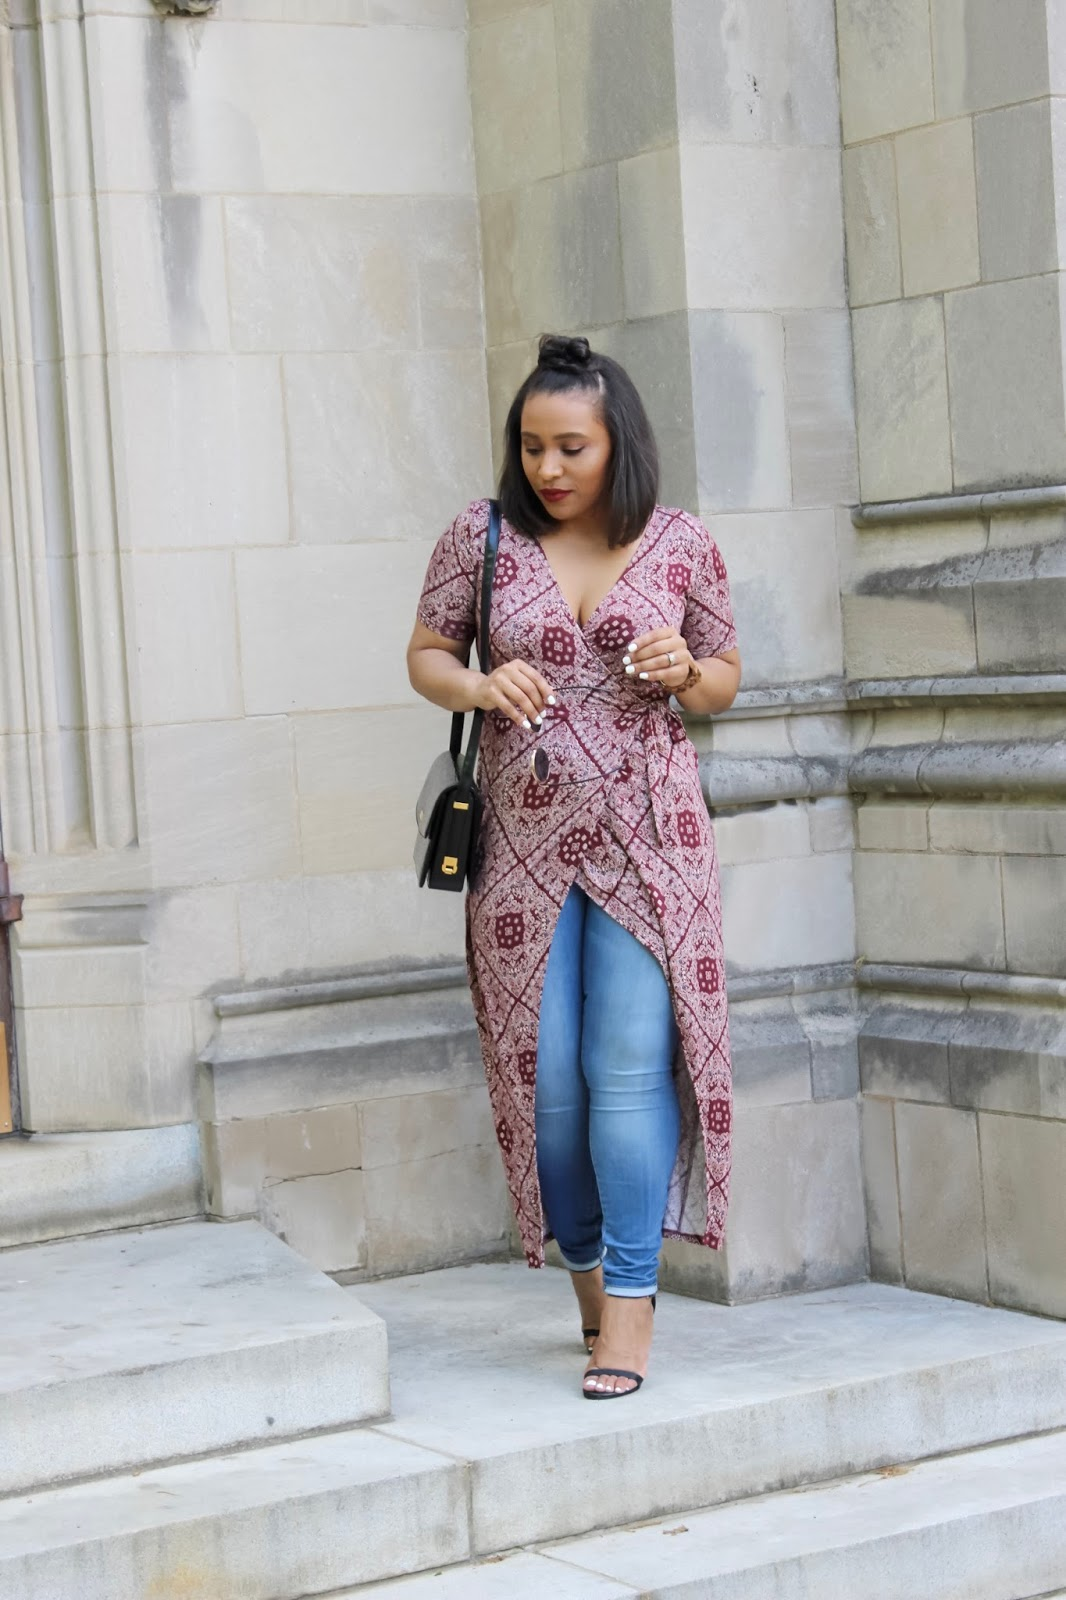 Patty's Kloset: How To Find Your Personal Style (Even On A ...